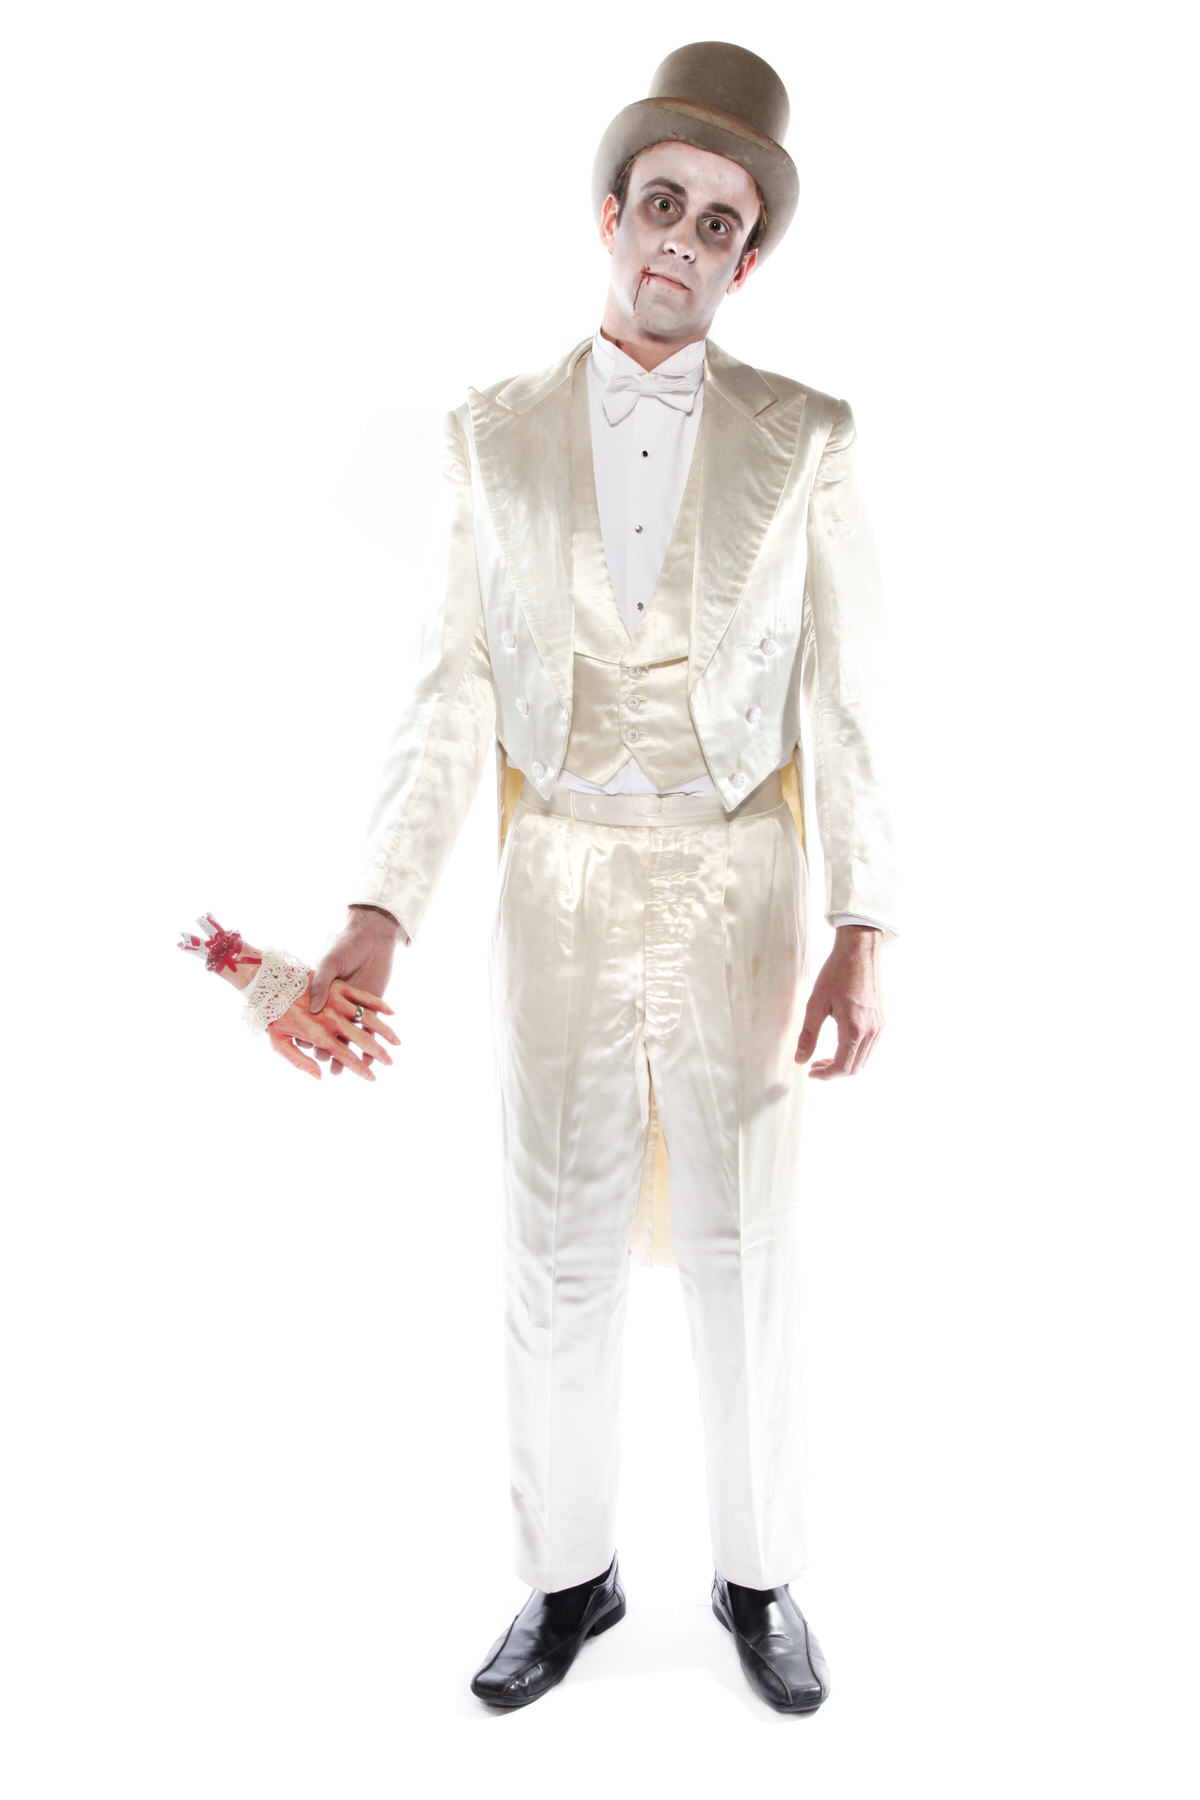 DEAD GROOM WHITE SATIN SUIT COSTUME W TOP HAT